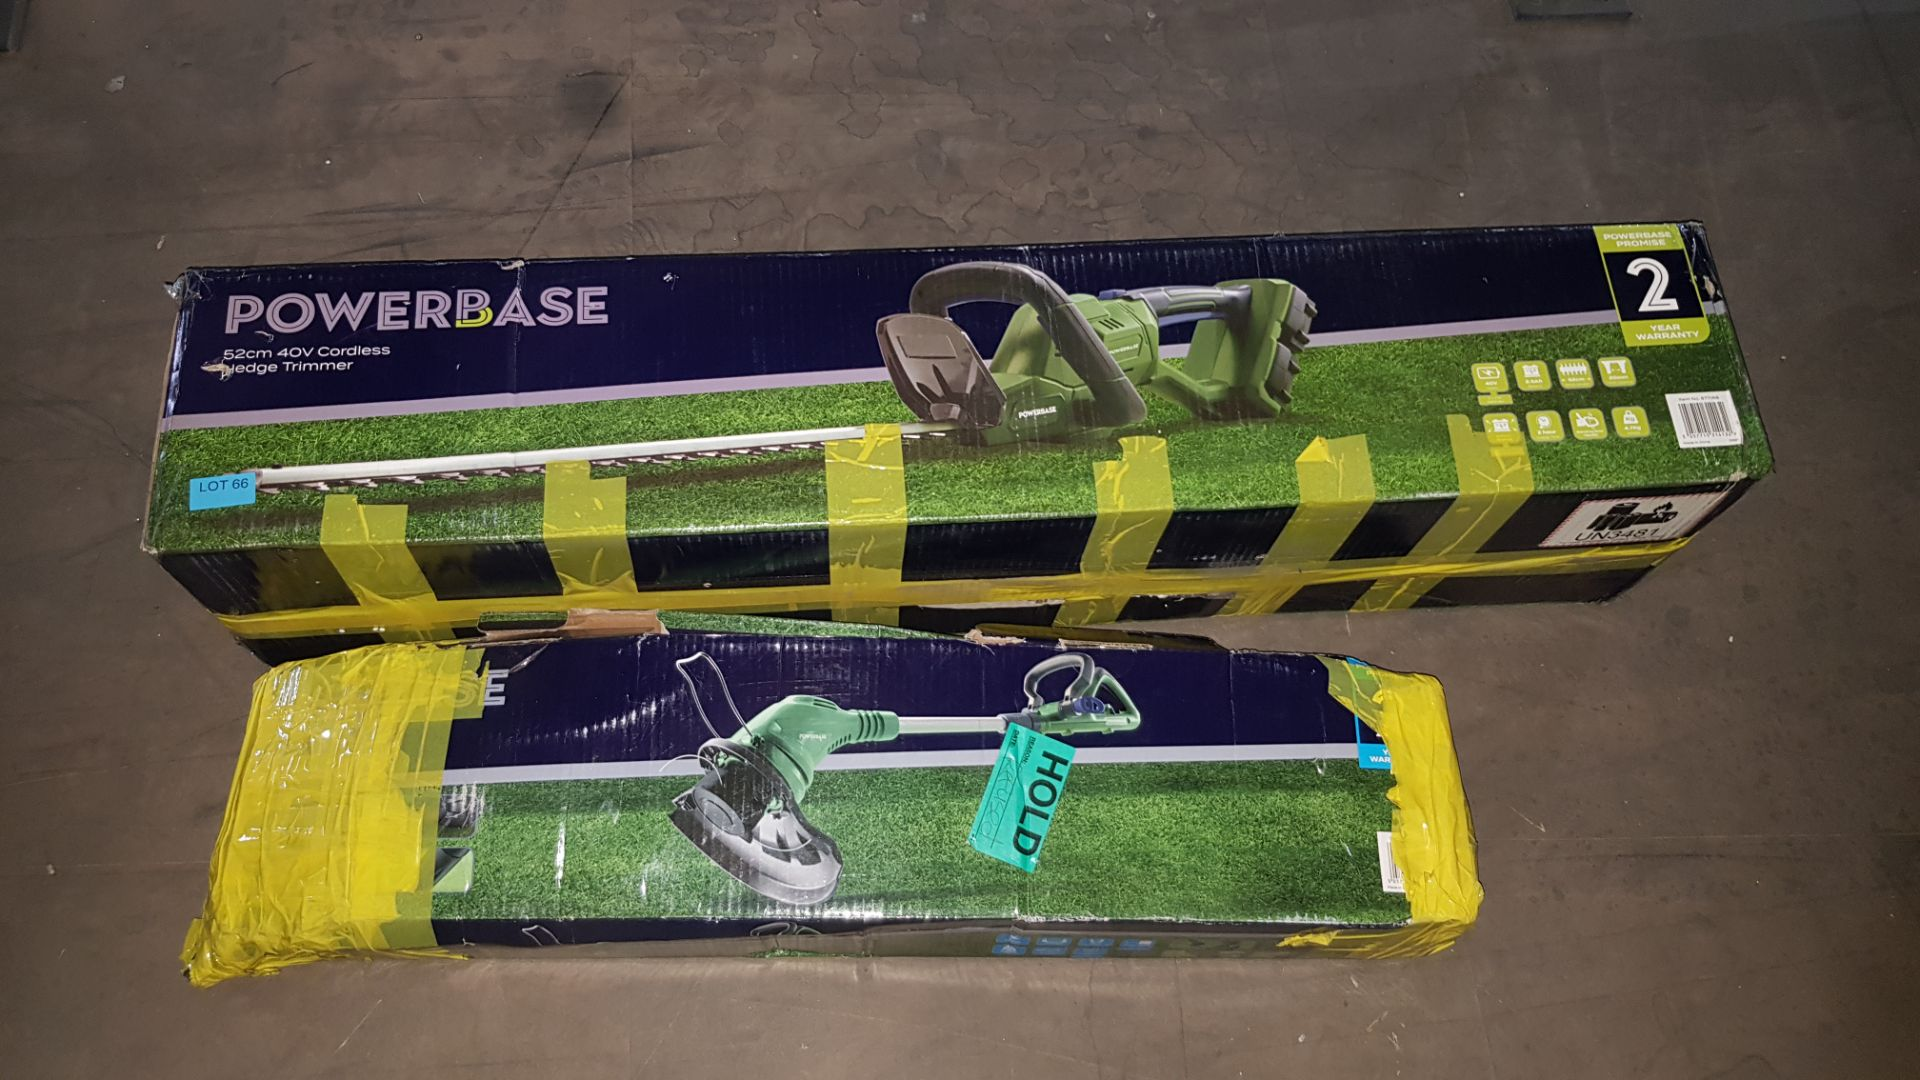 (P5) 2x Powerbase Items. 1x 52cm 40V Cordless Hedge Trimmer RRP £90 (Unit Appears Clean., Unused Wi - Image 2 of 3